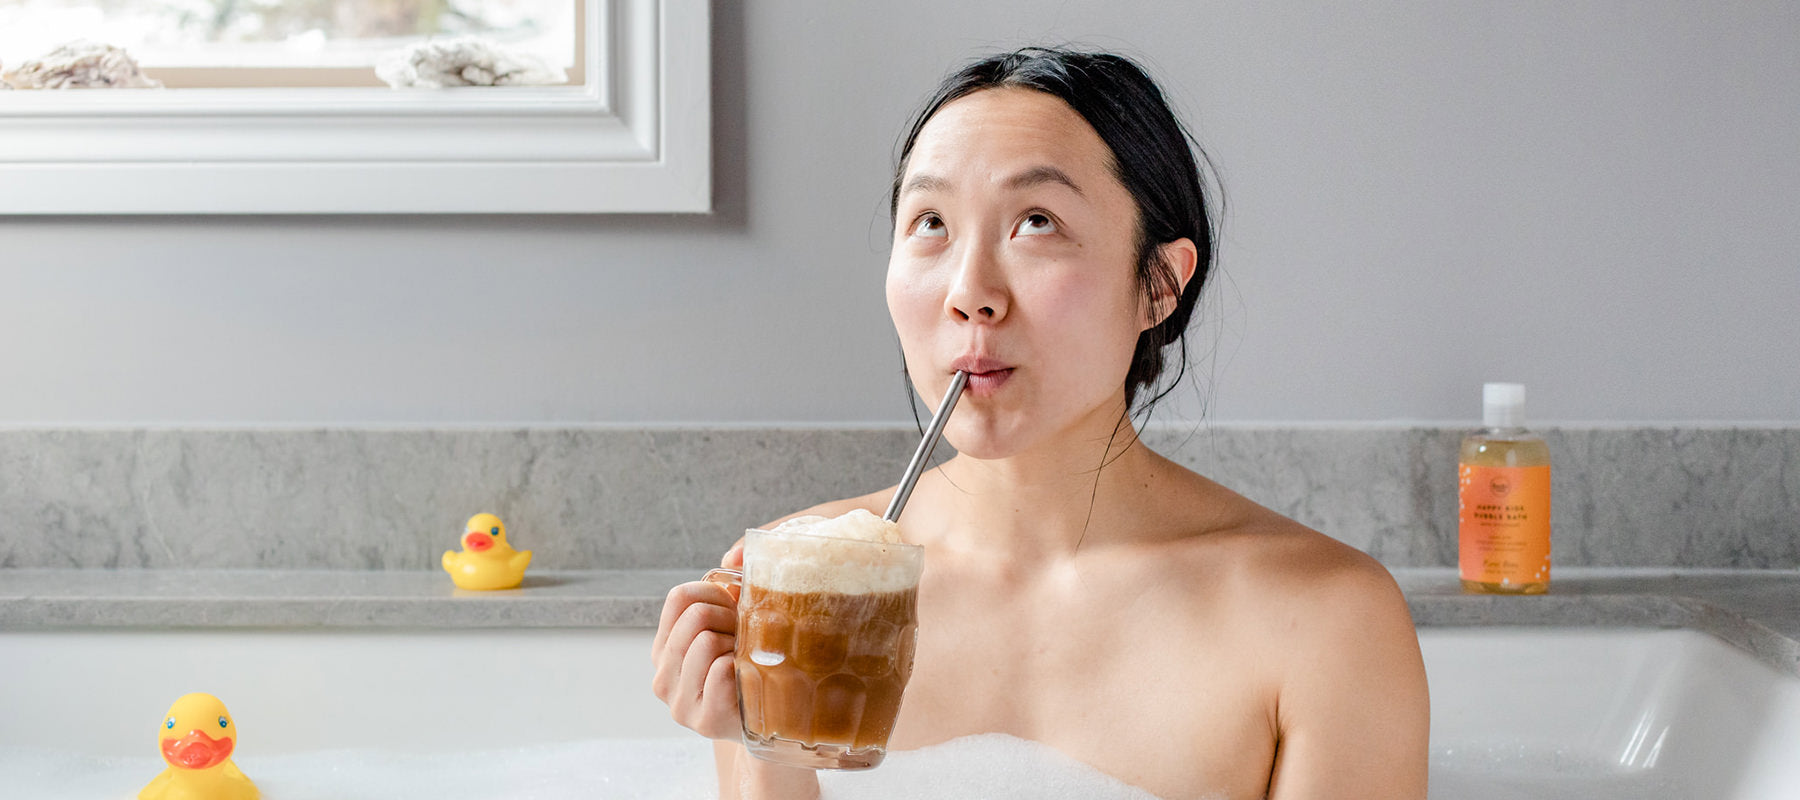 Woman in the bath drinking a root beer float with a bottle of all natural sls-free root beer scented bubble bath and rubber duckies in the background.